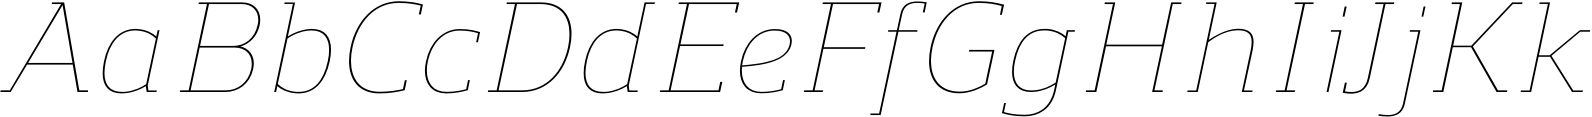 Regan Slab UltraLight Italic Font